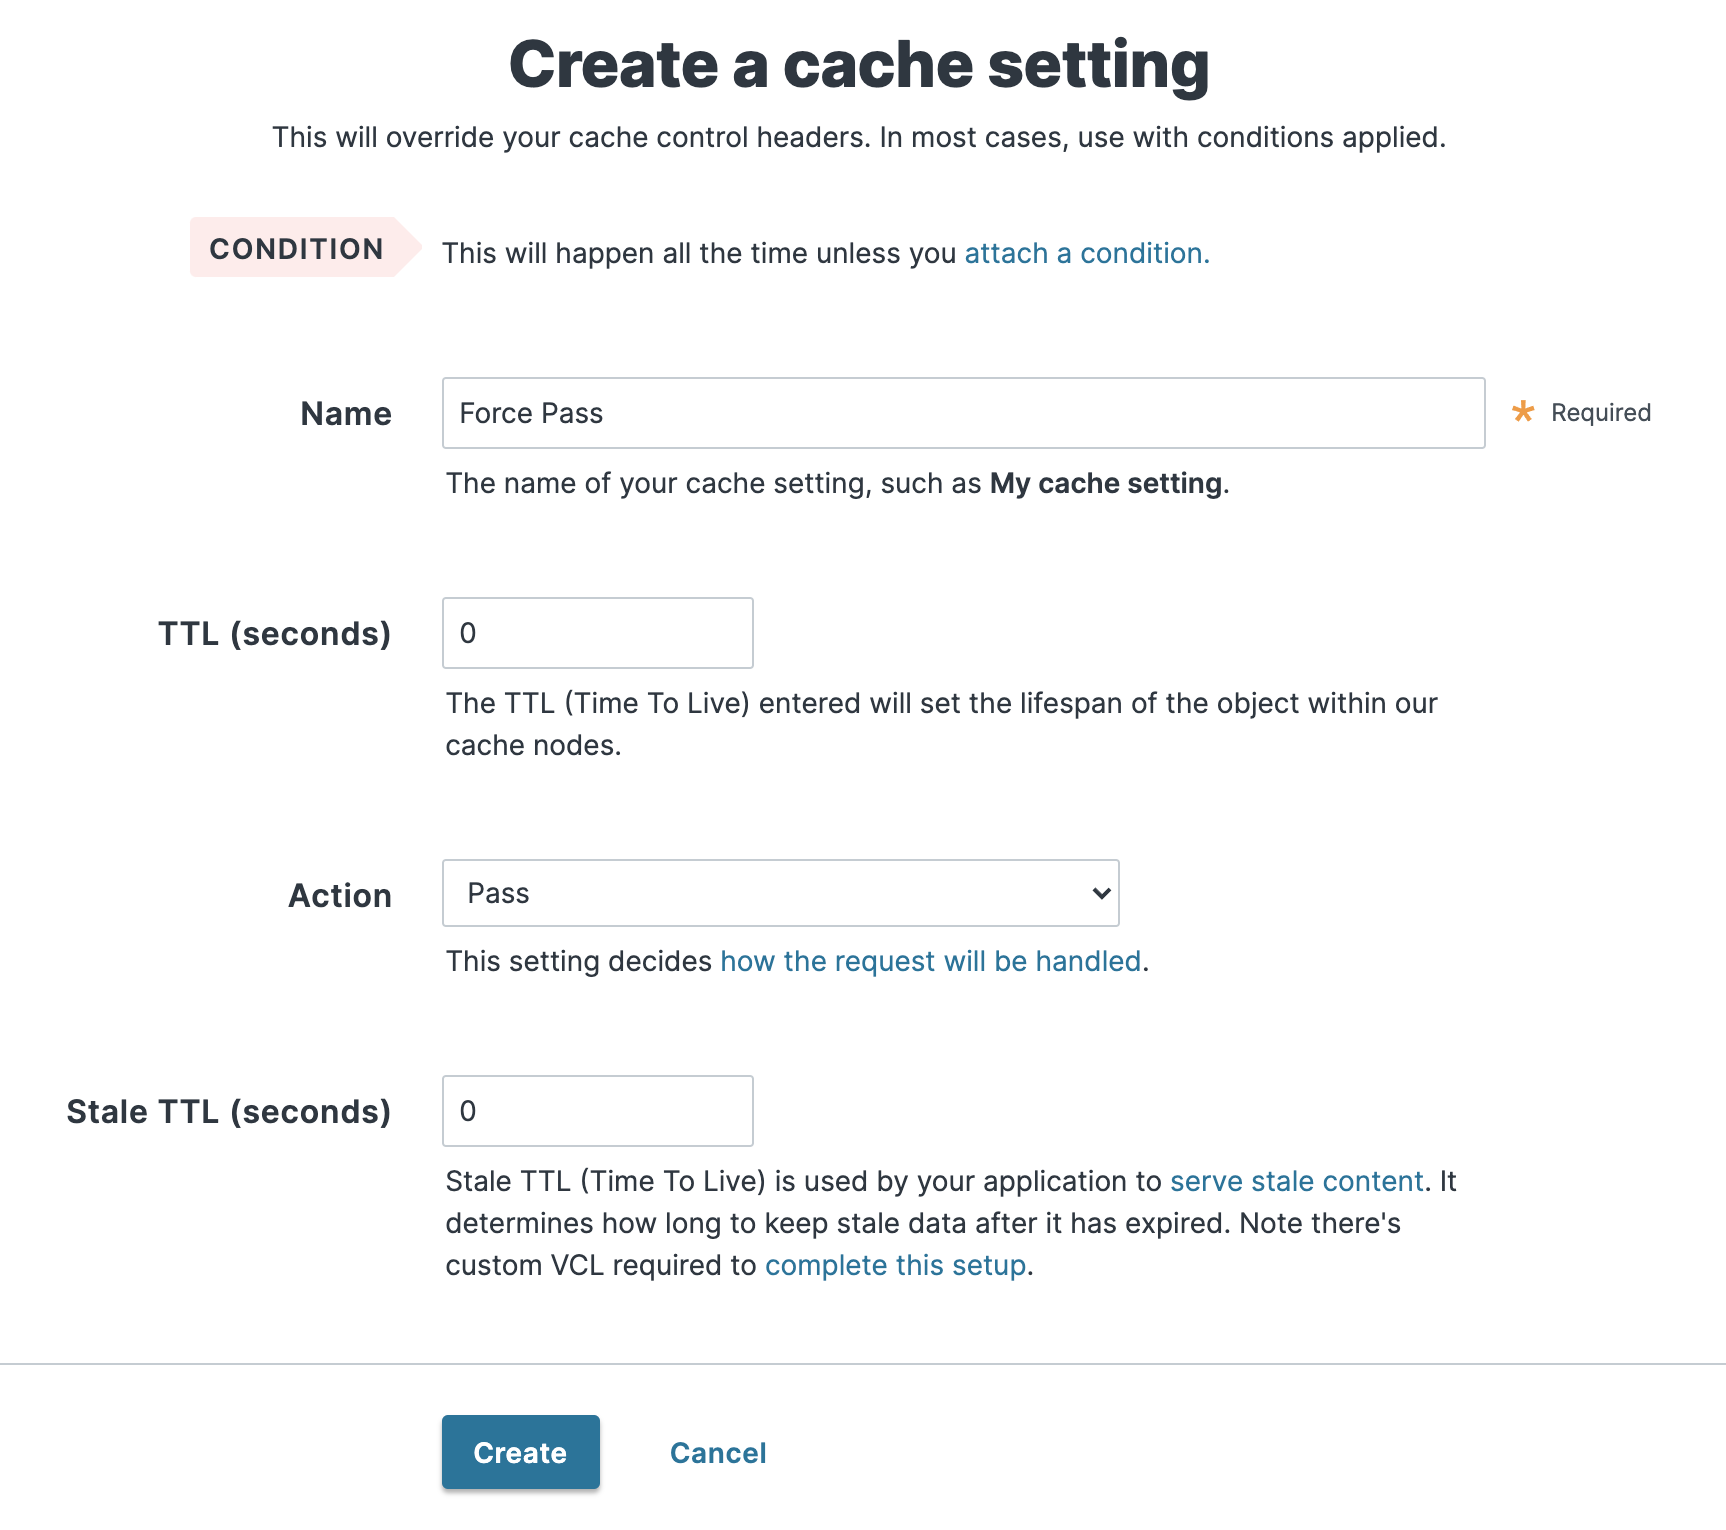 the Cache Settings window